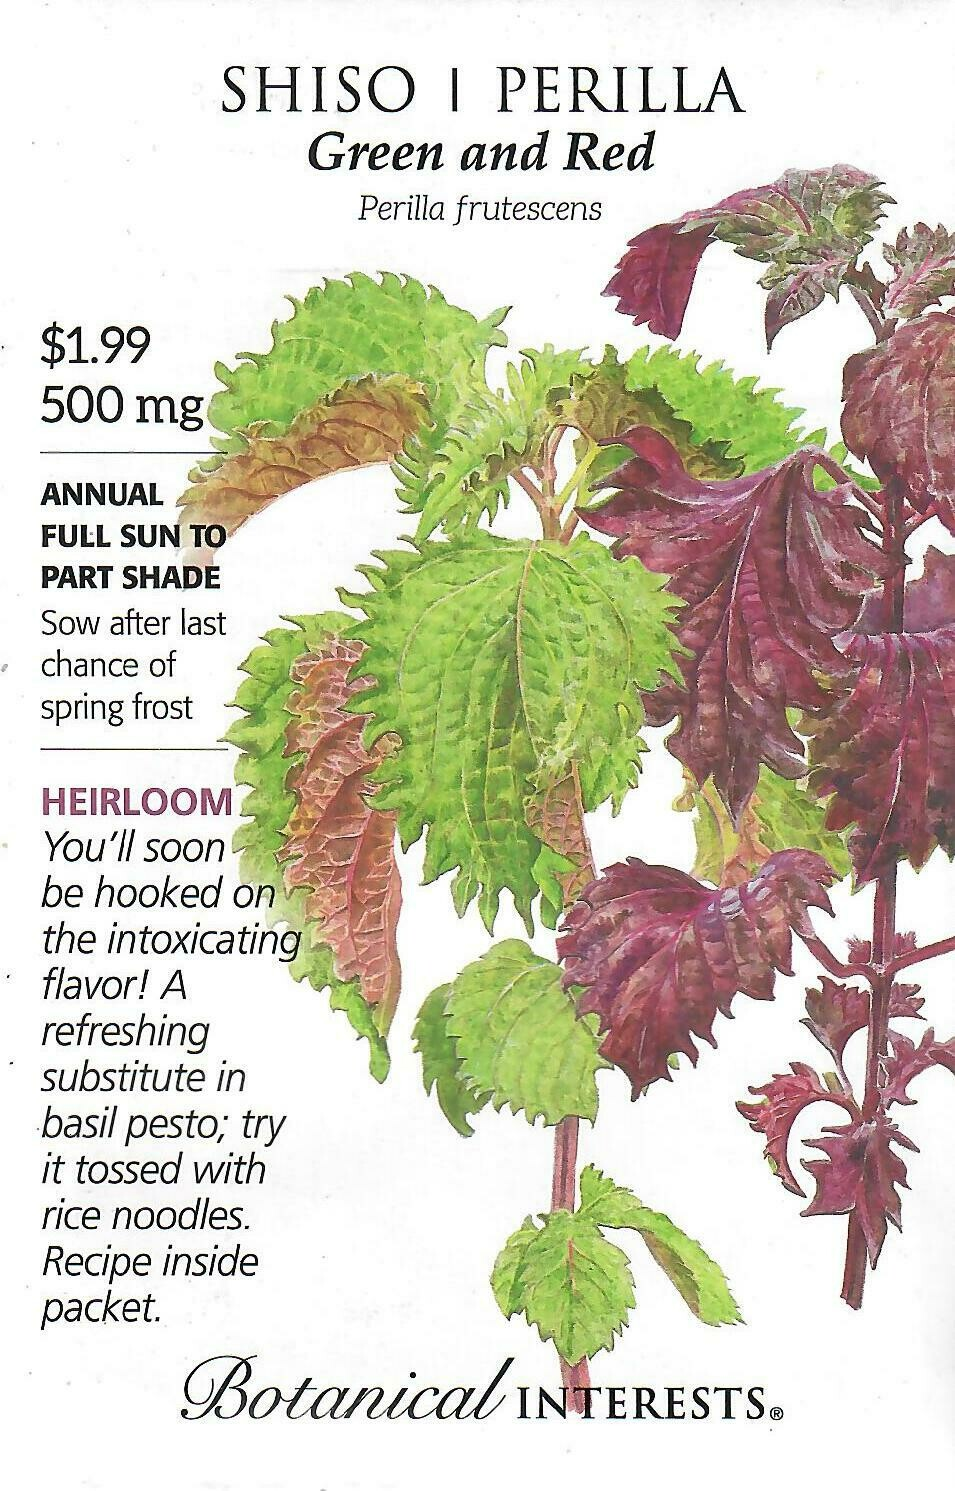 Shiso/Perilla Green & Red Botanical Interests